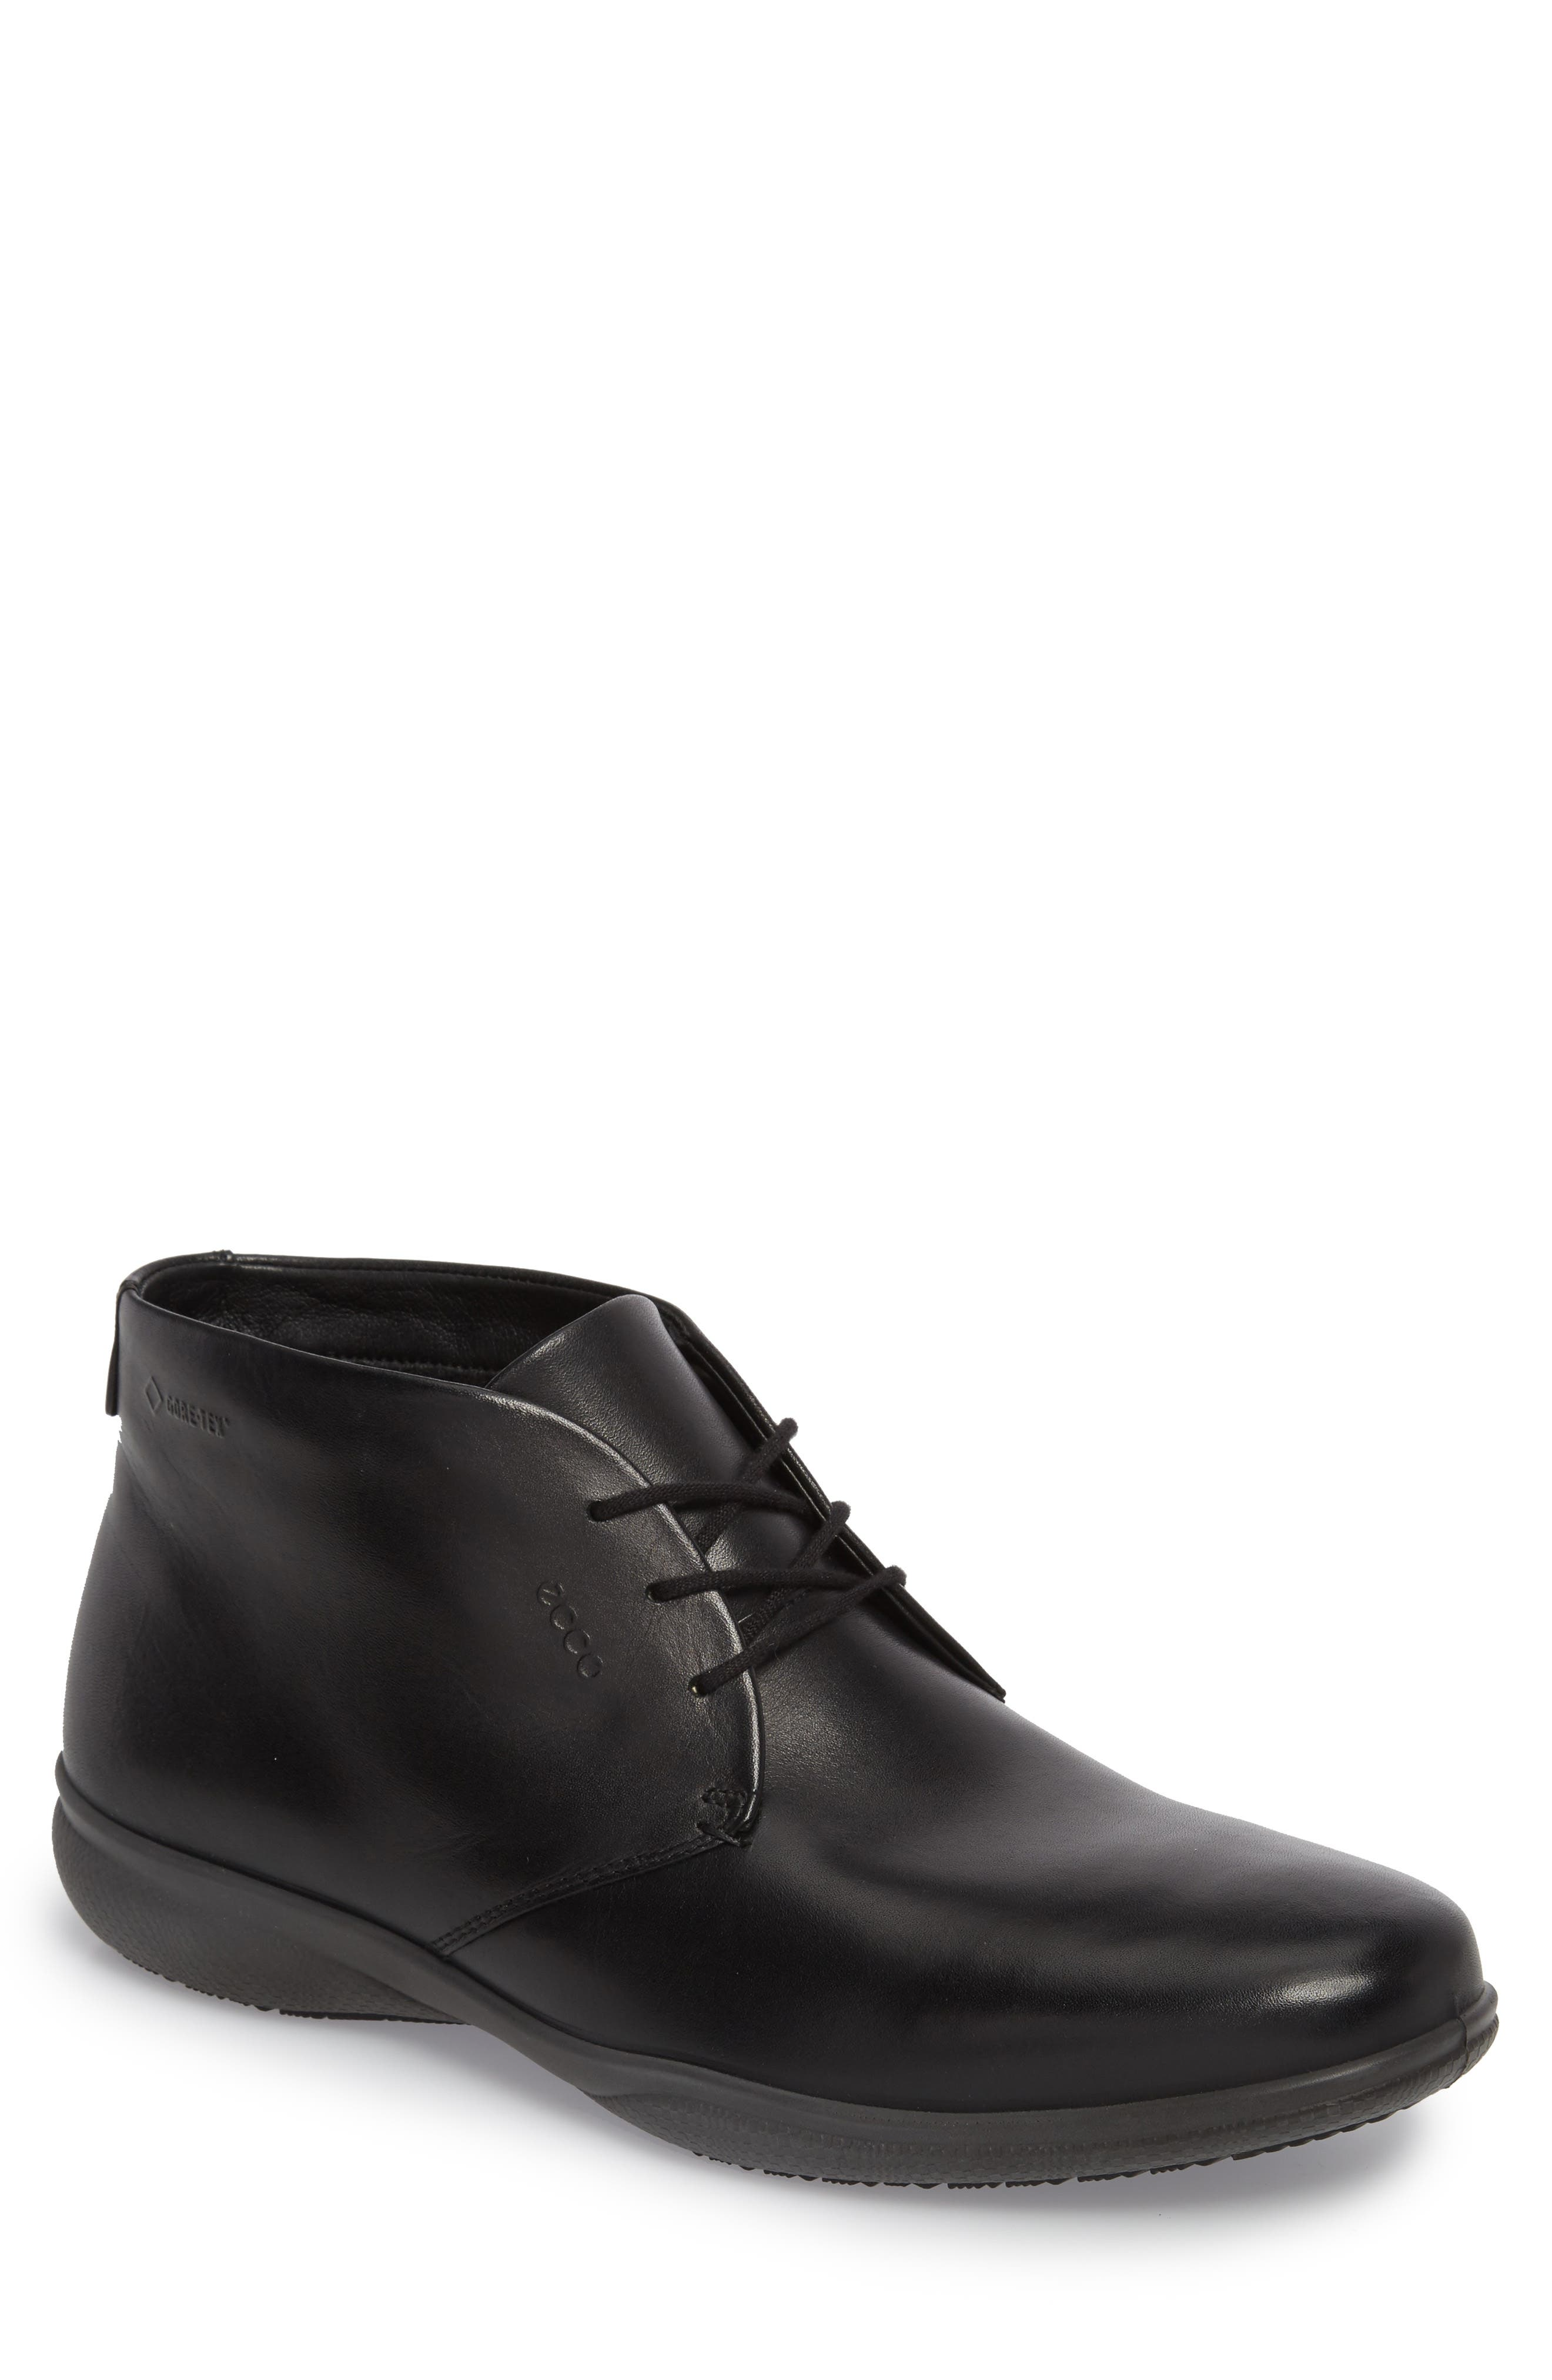 'Grenoble' Chukka Boot, Main, color, 006